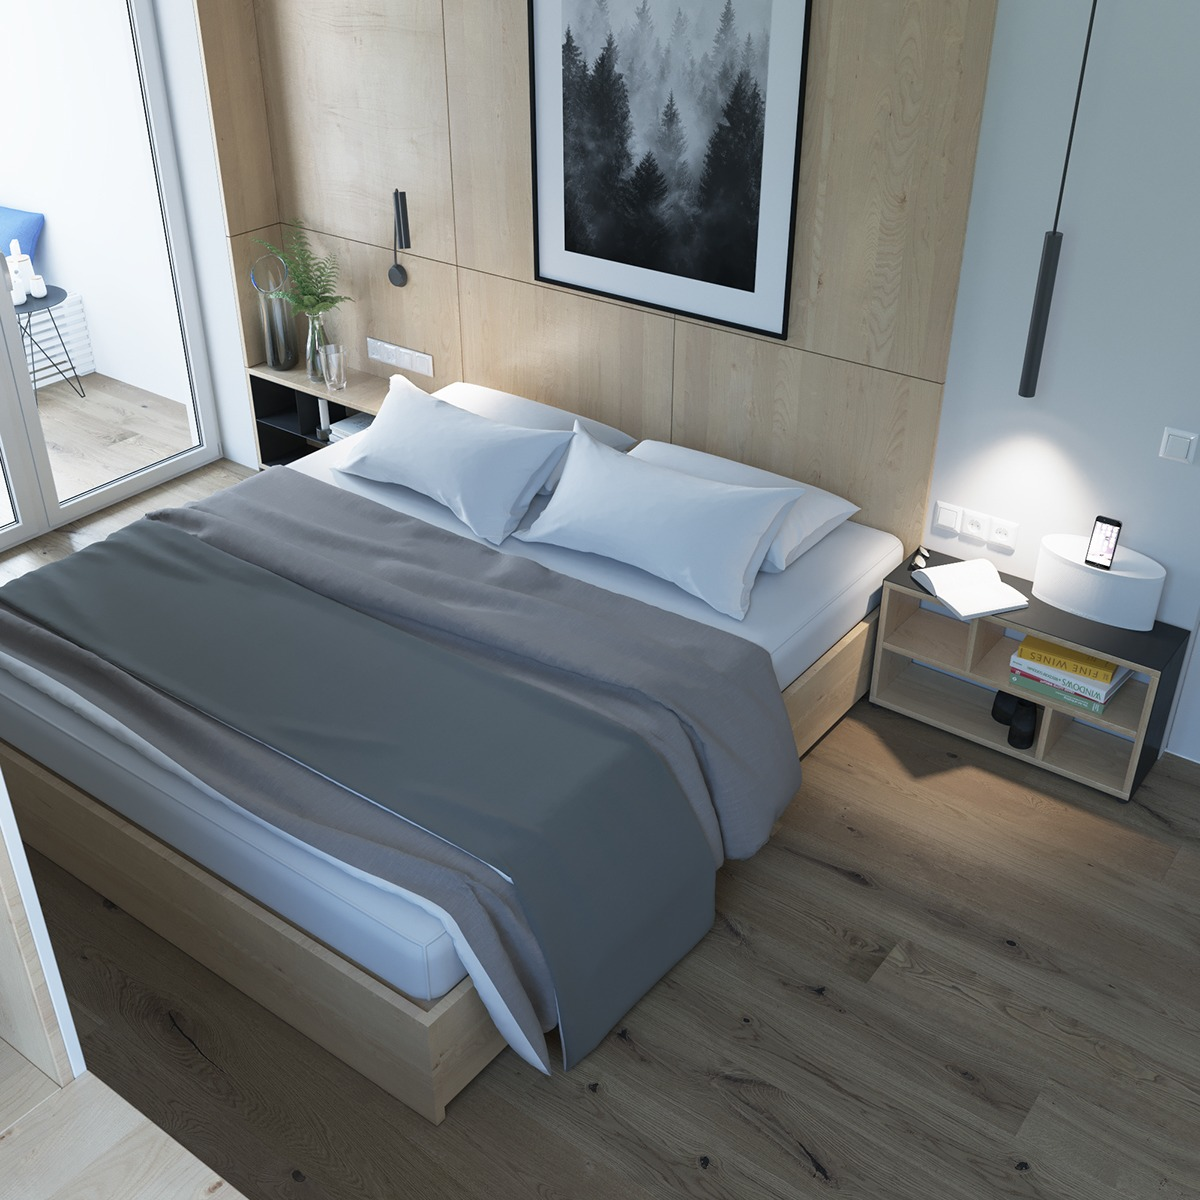 Simple Bedroom White Sheets Gray Bedding - 2 stunningly beautiful homes decorated in modern scandinavian style